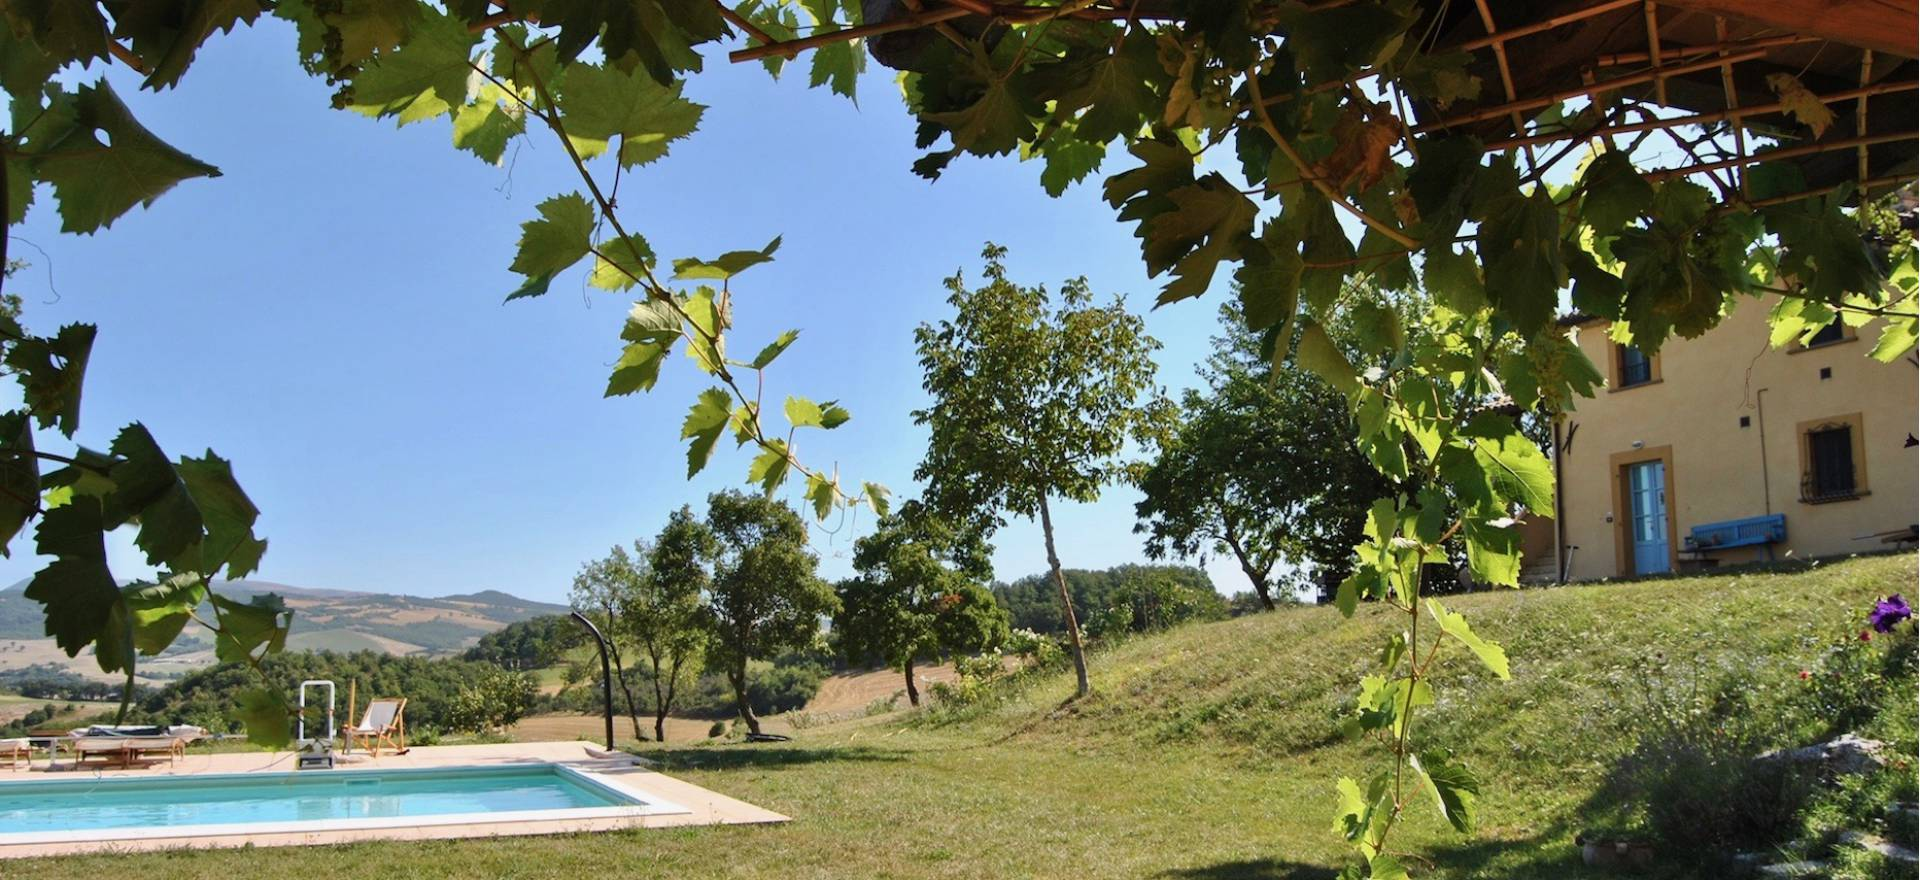 Agriturismo Marche Agriturismo Marche, cozy atmosphere and kid friendly